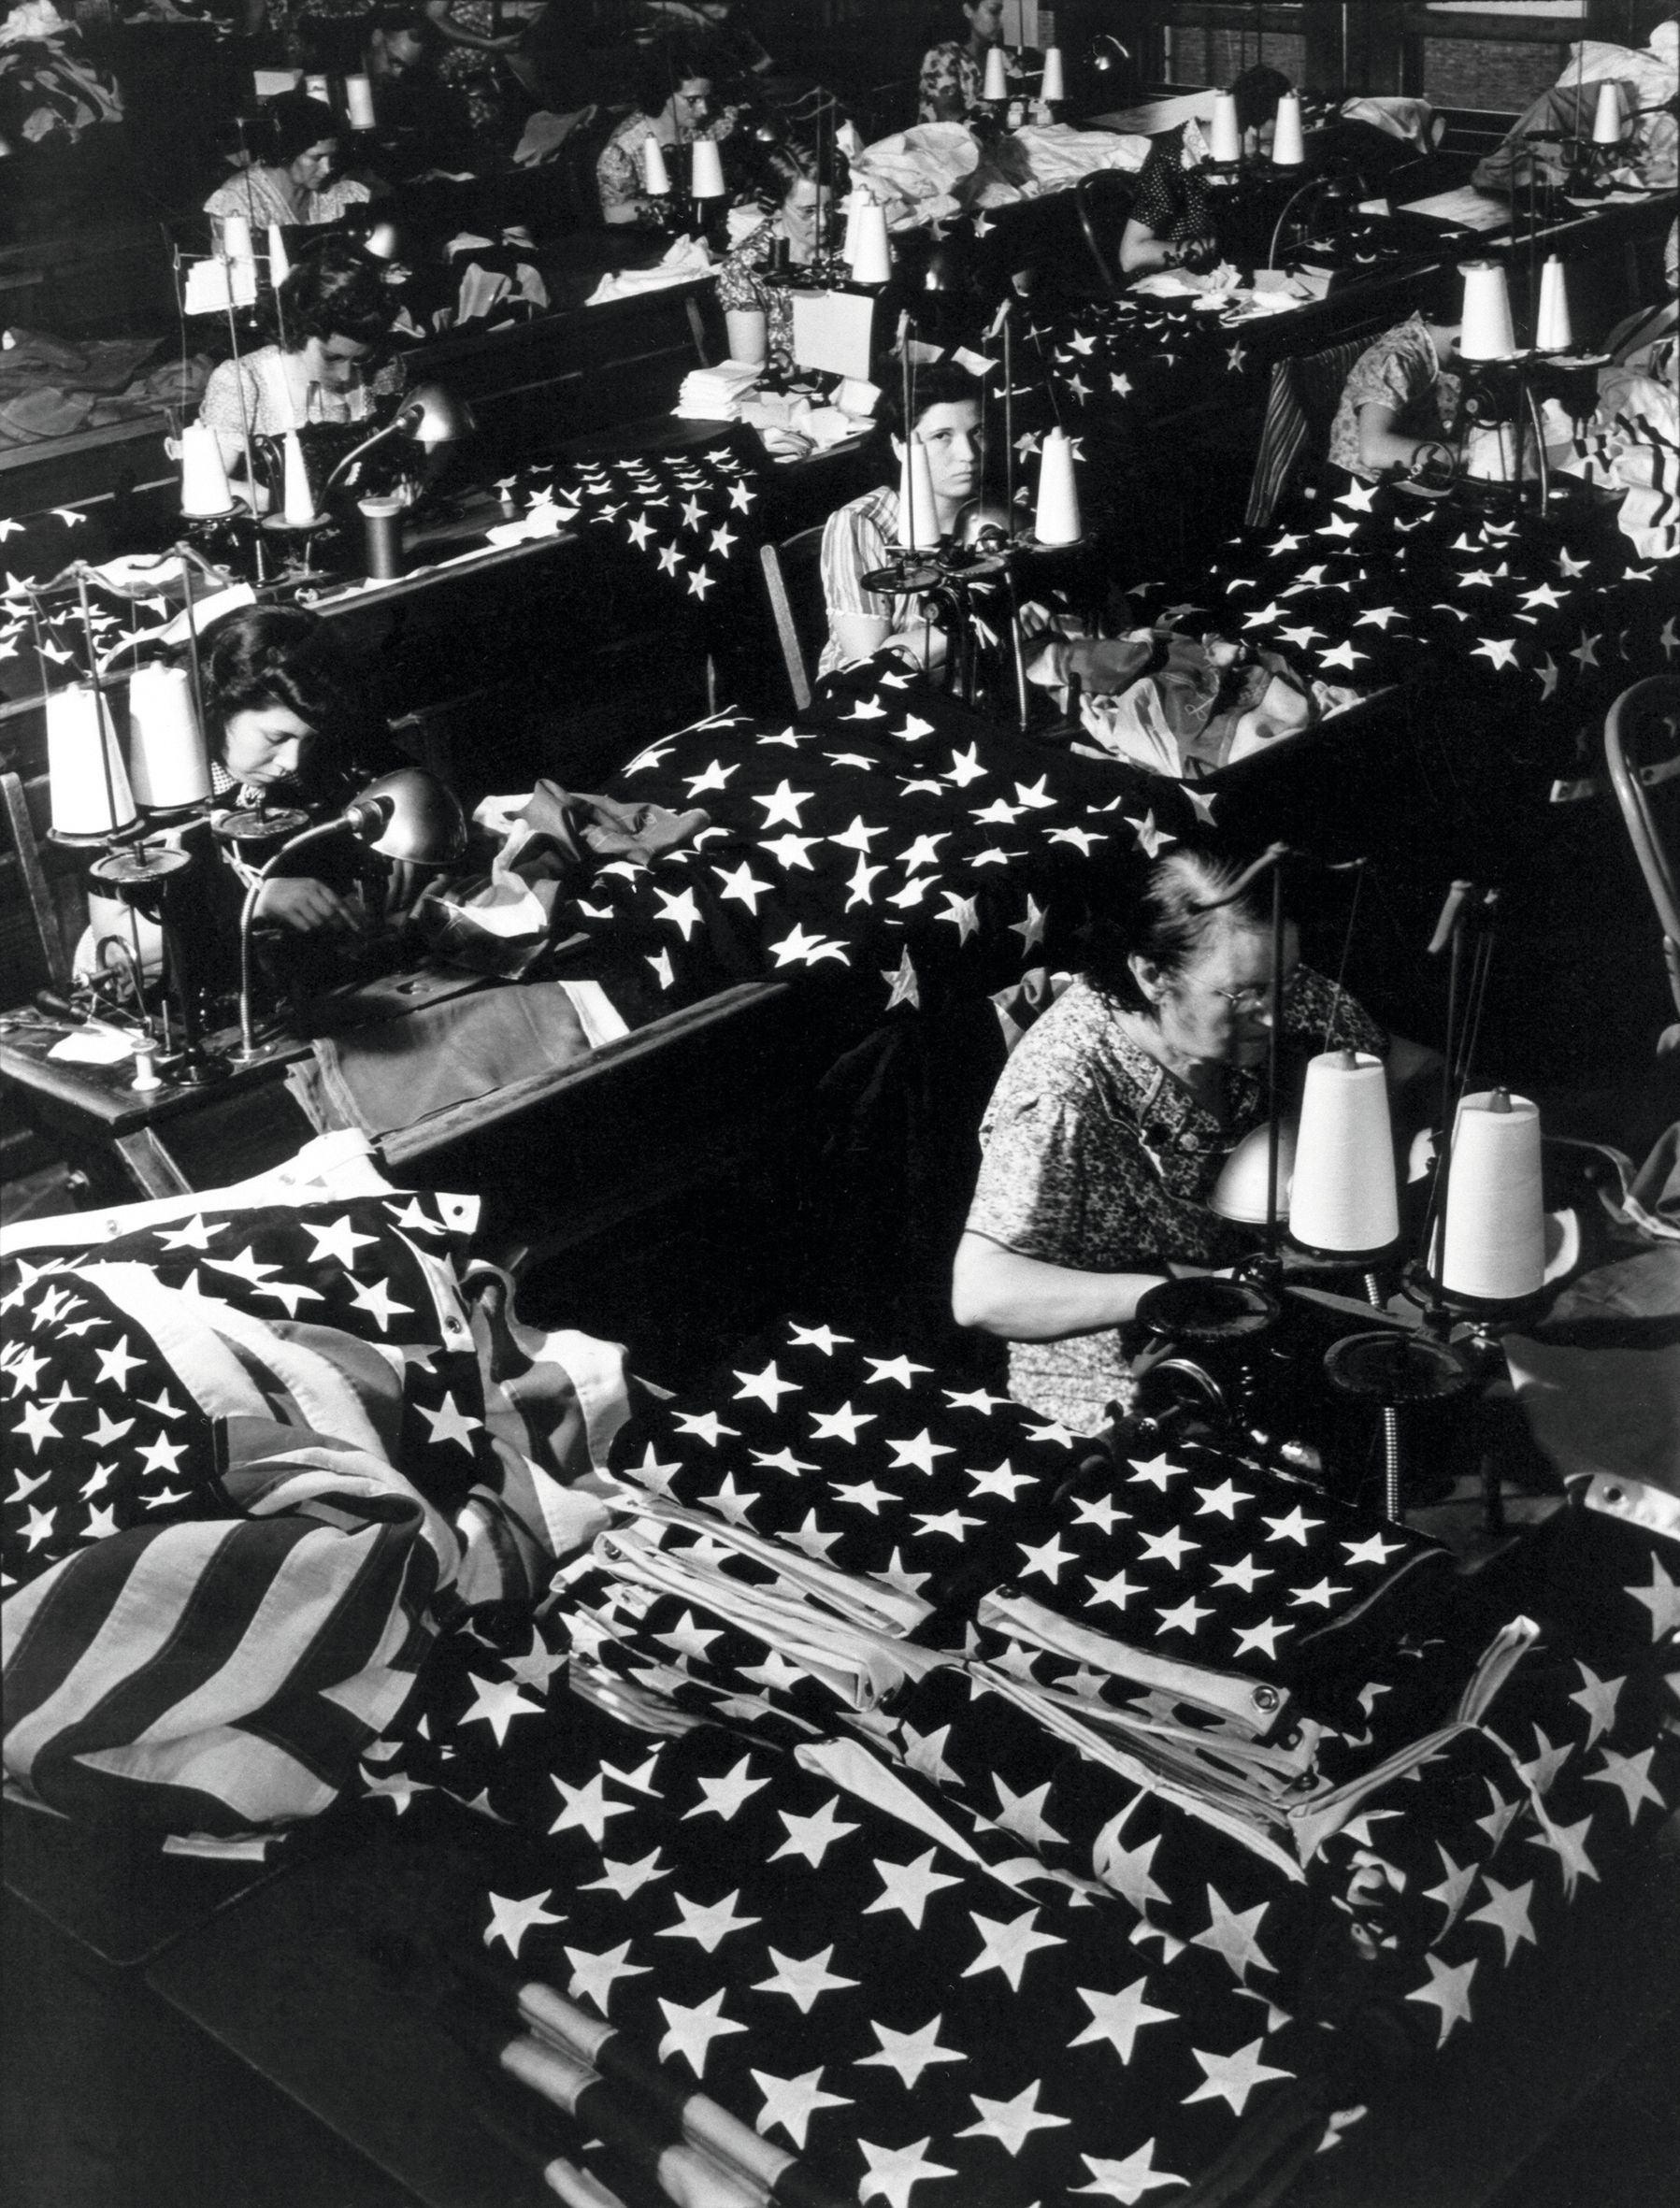 Women Sewing Flags, Margaret Bourke-White, 1940